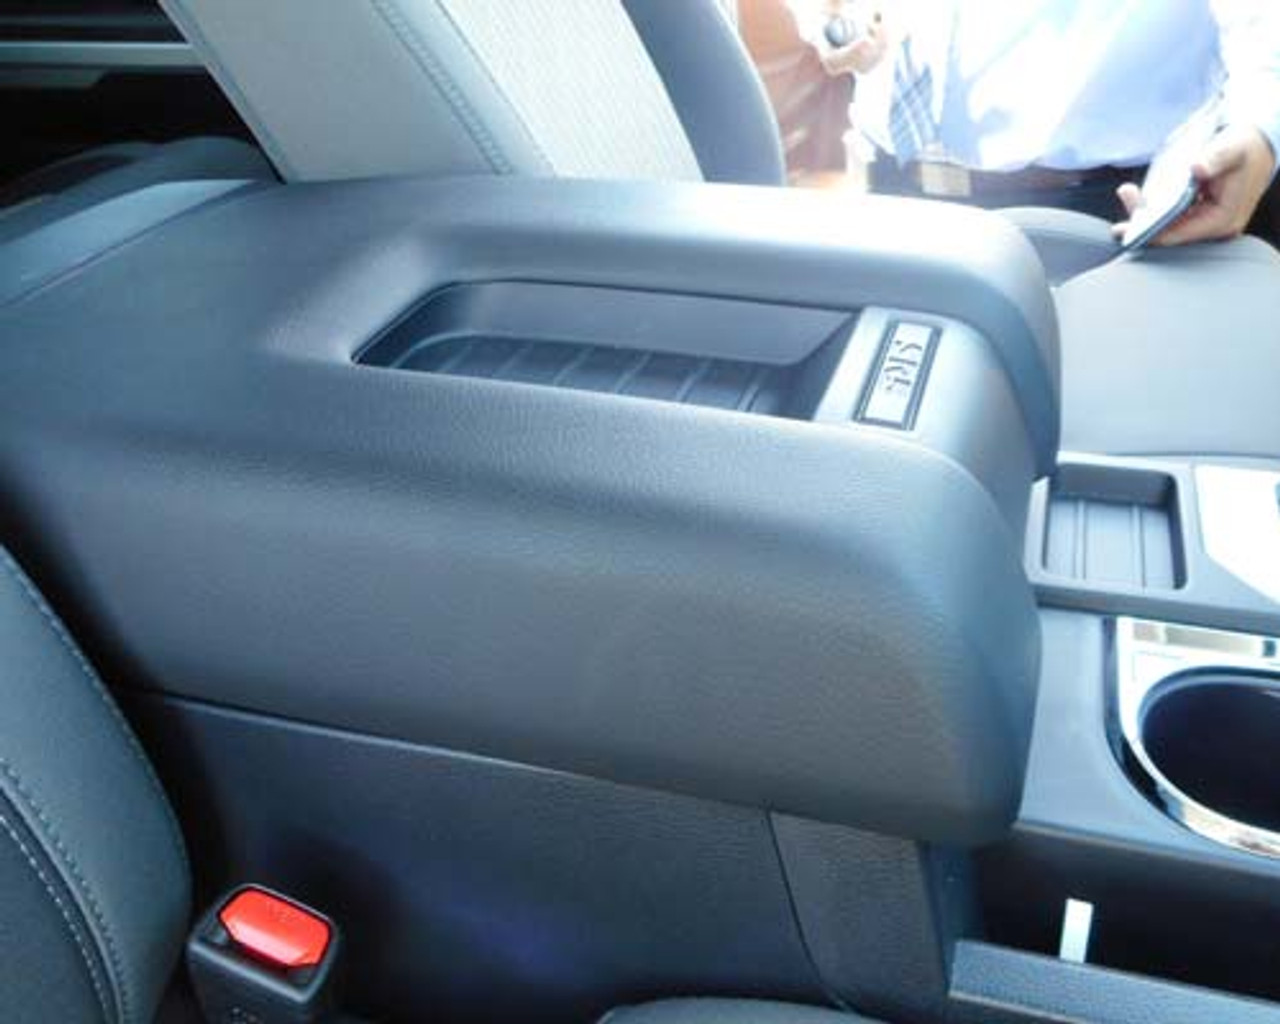 Toyota Tundra center console lock box (2014 - 2018)